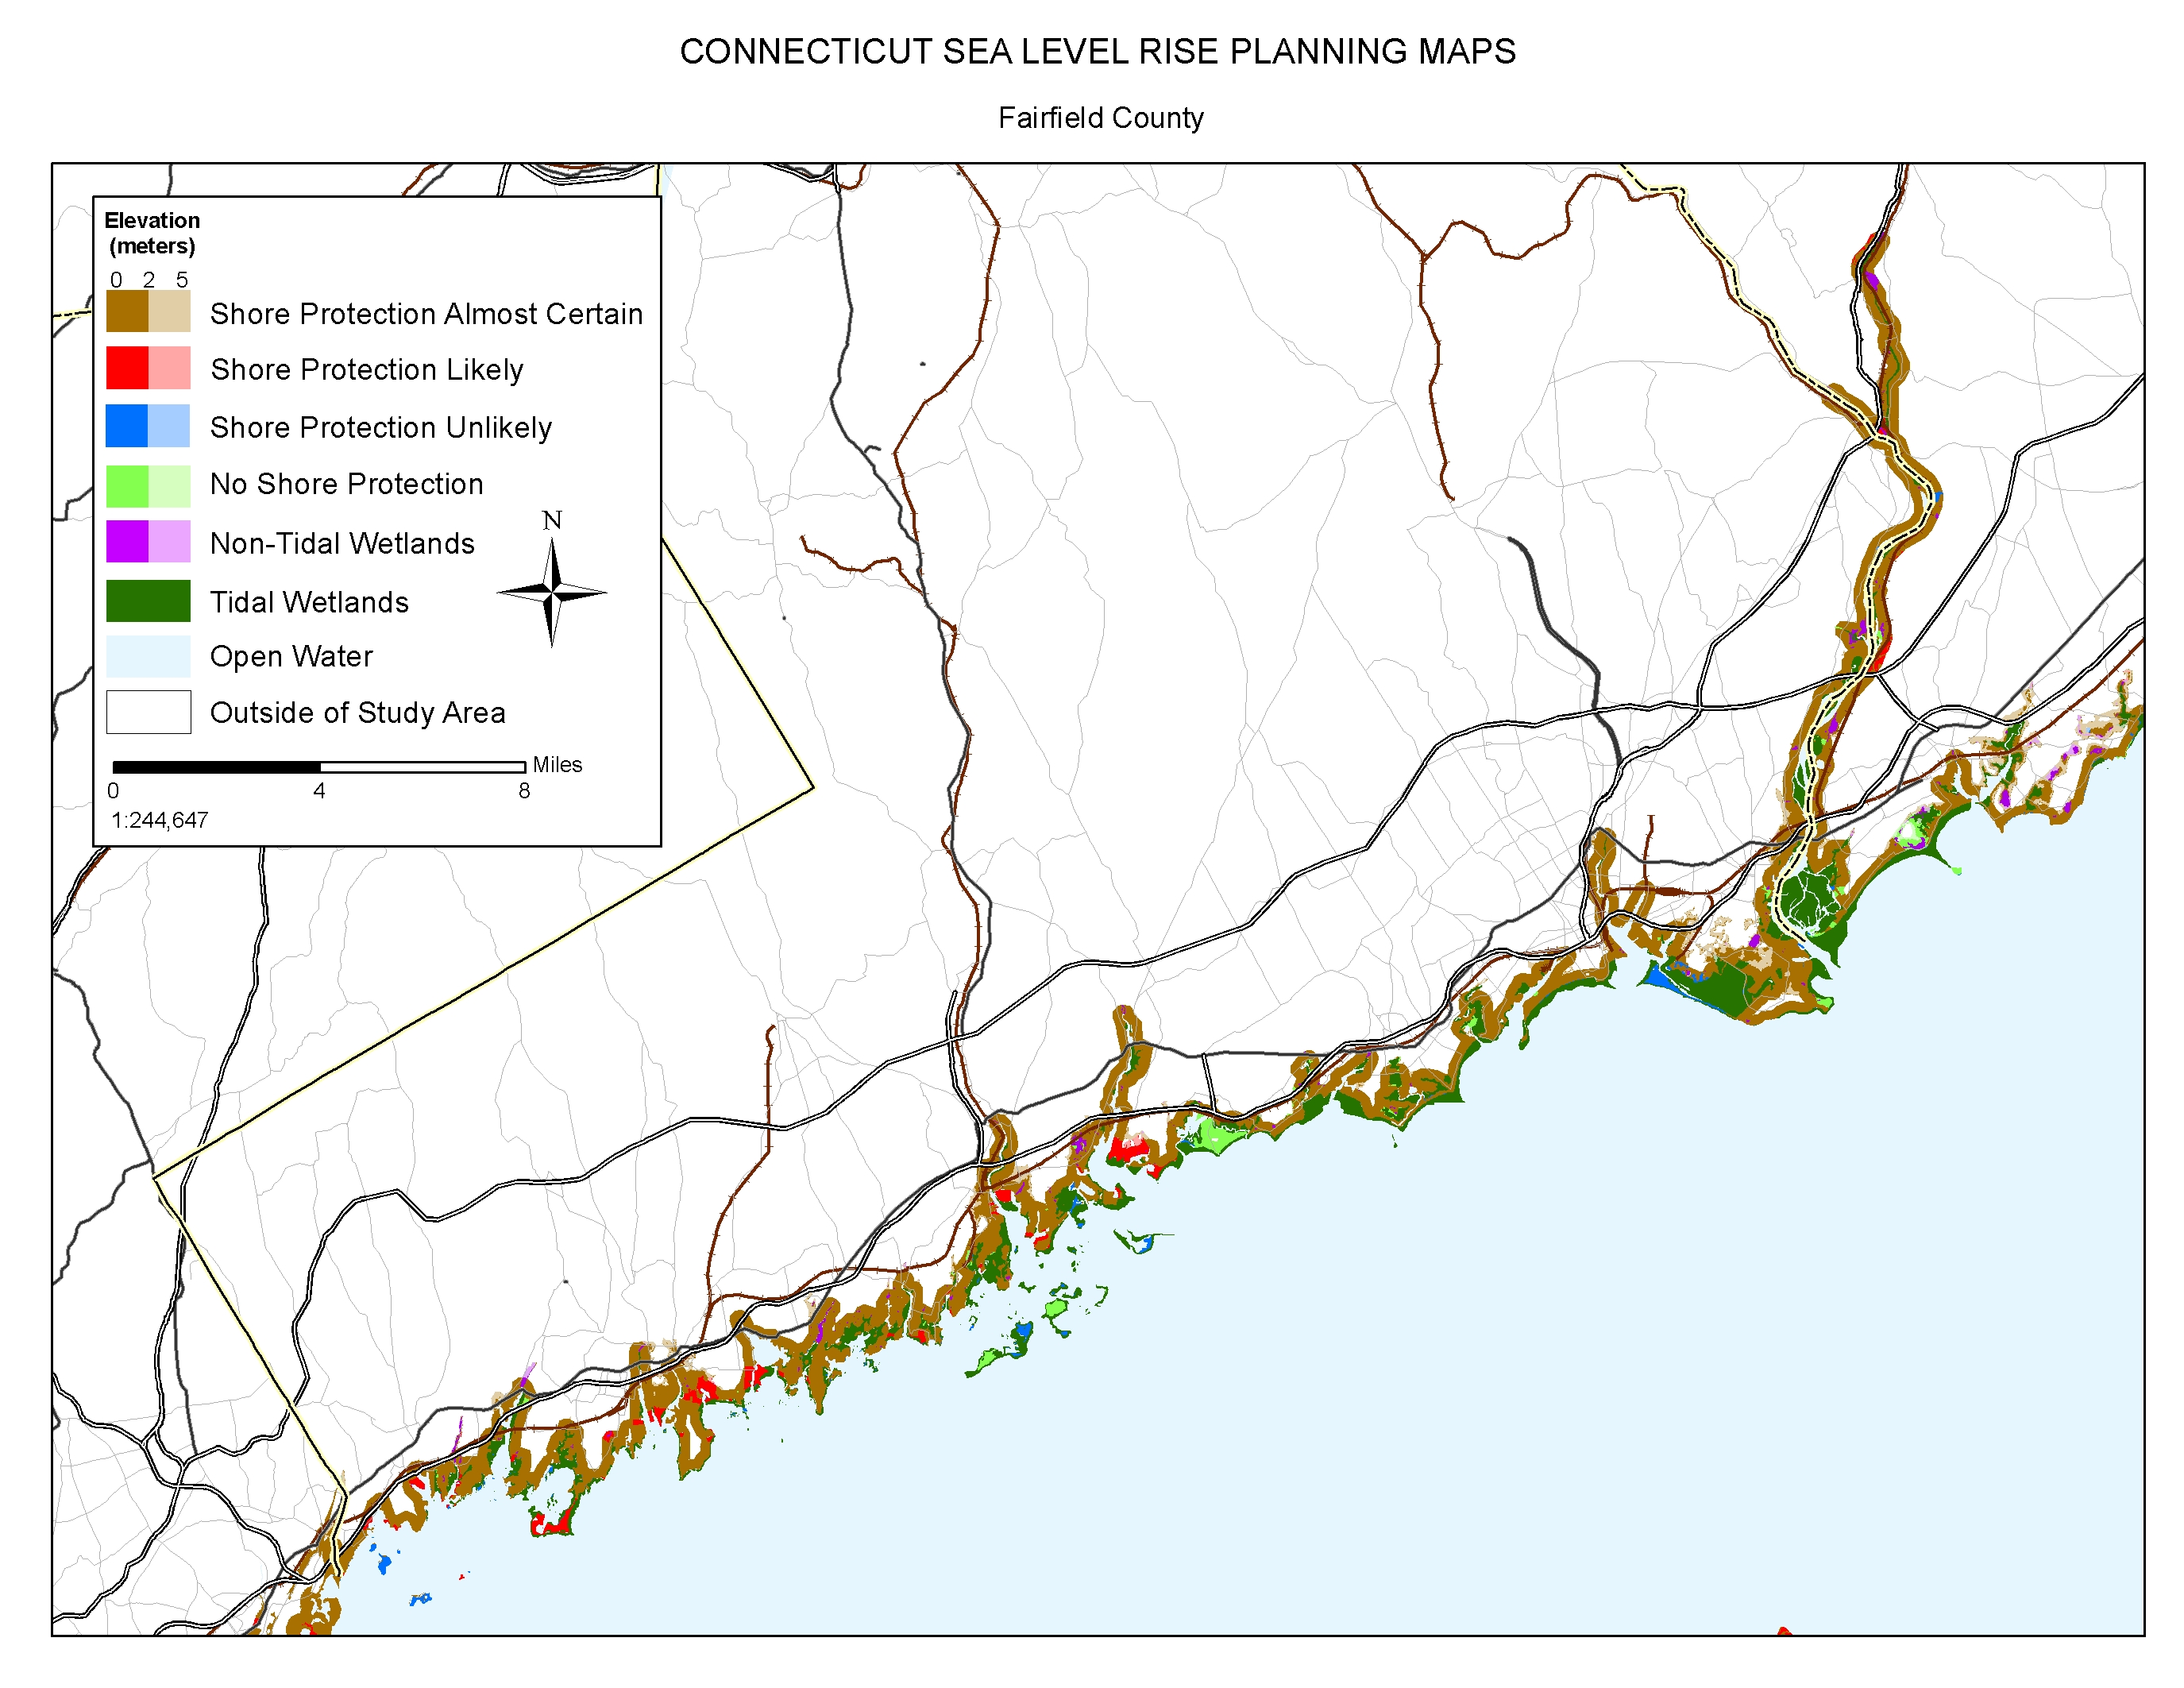 sea levei rise planning map of fairfield connecticut. sea level rise planning maps likelihood of shore protection in